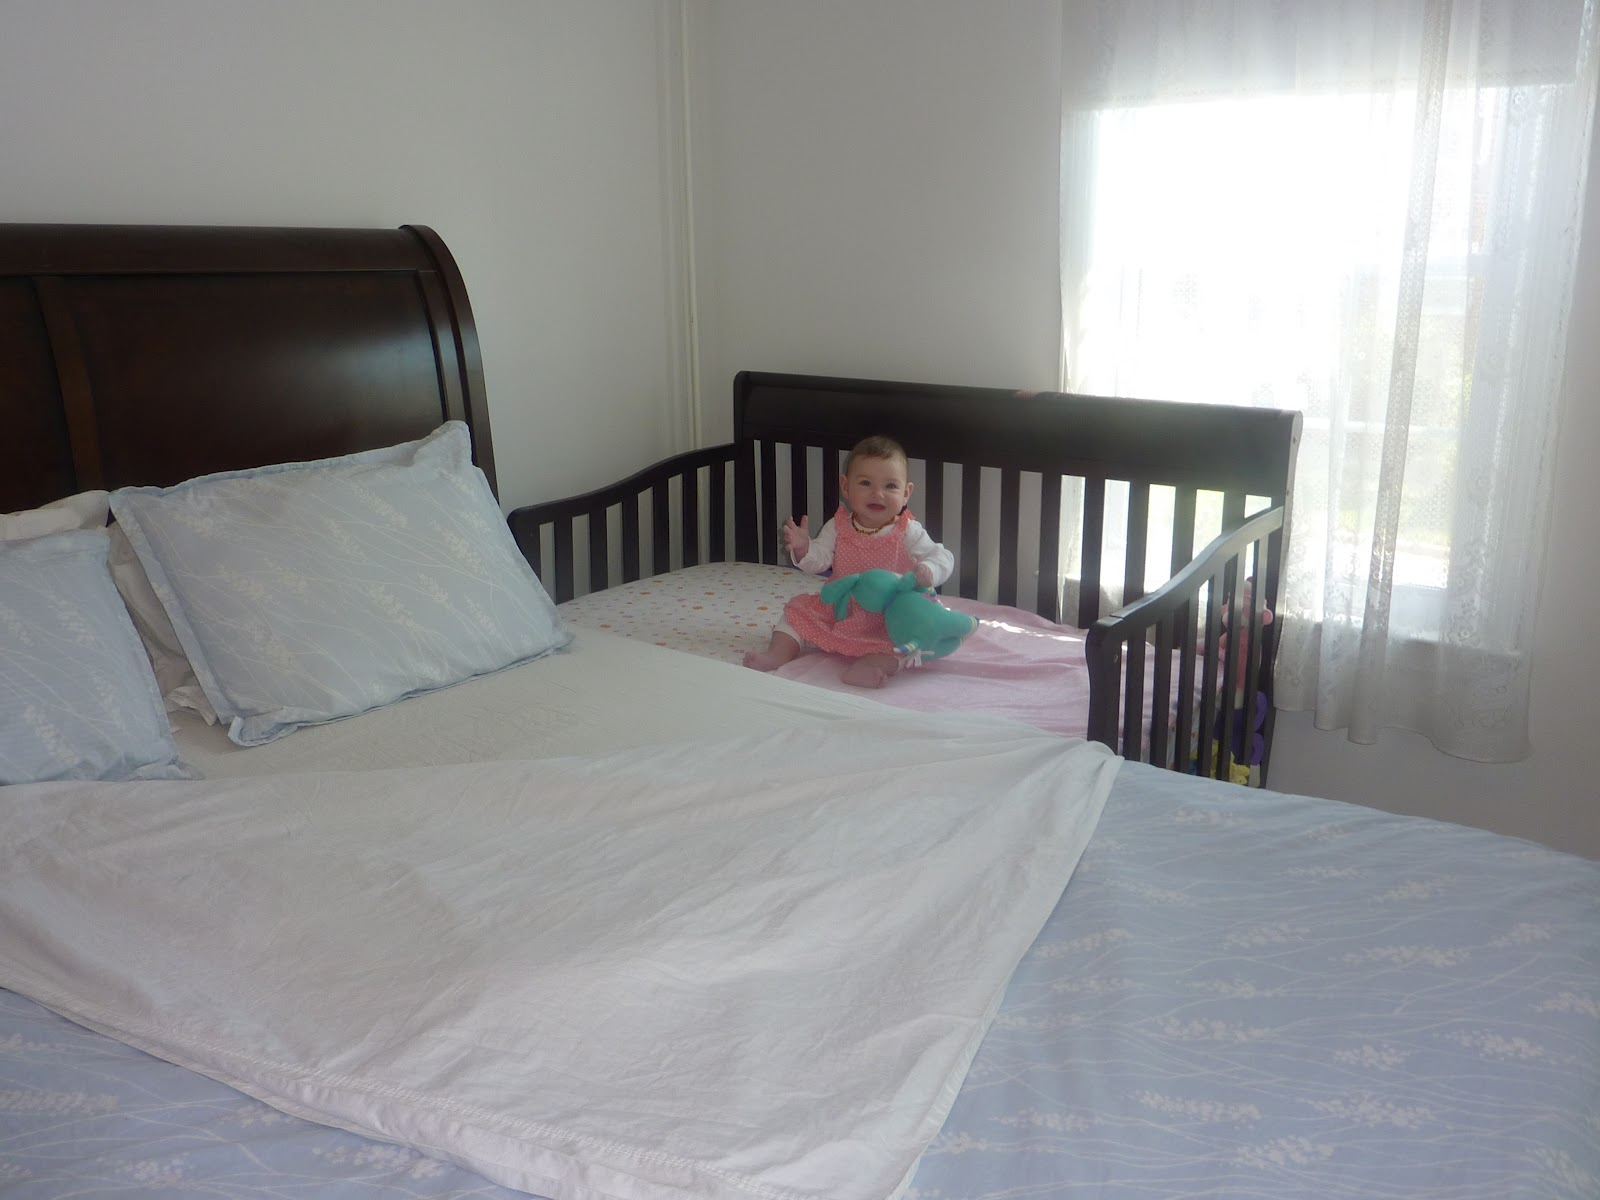 deluxe foam to l cots co sleep baby next bed mattress crib sleeping cribs view larger cot chicco white position me bedside